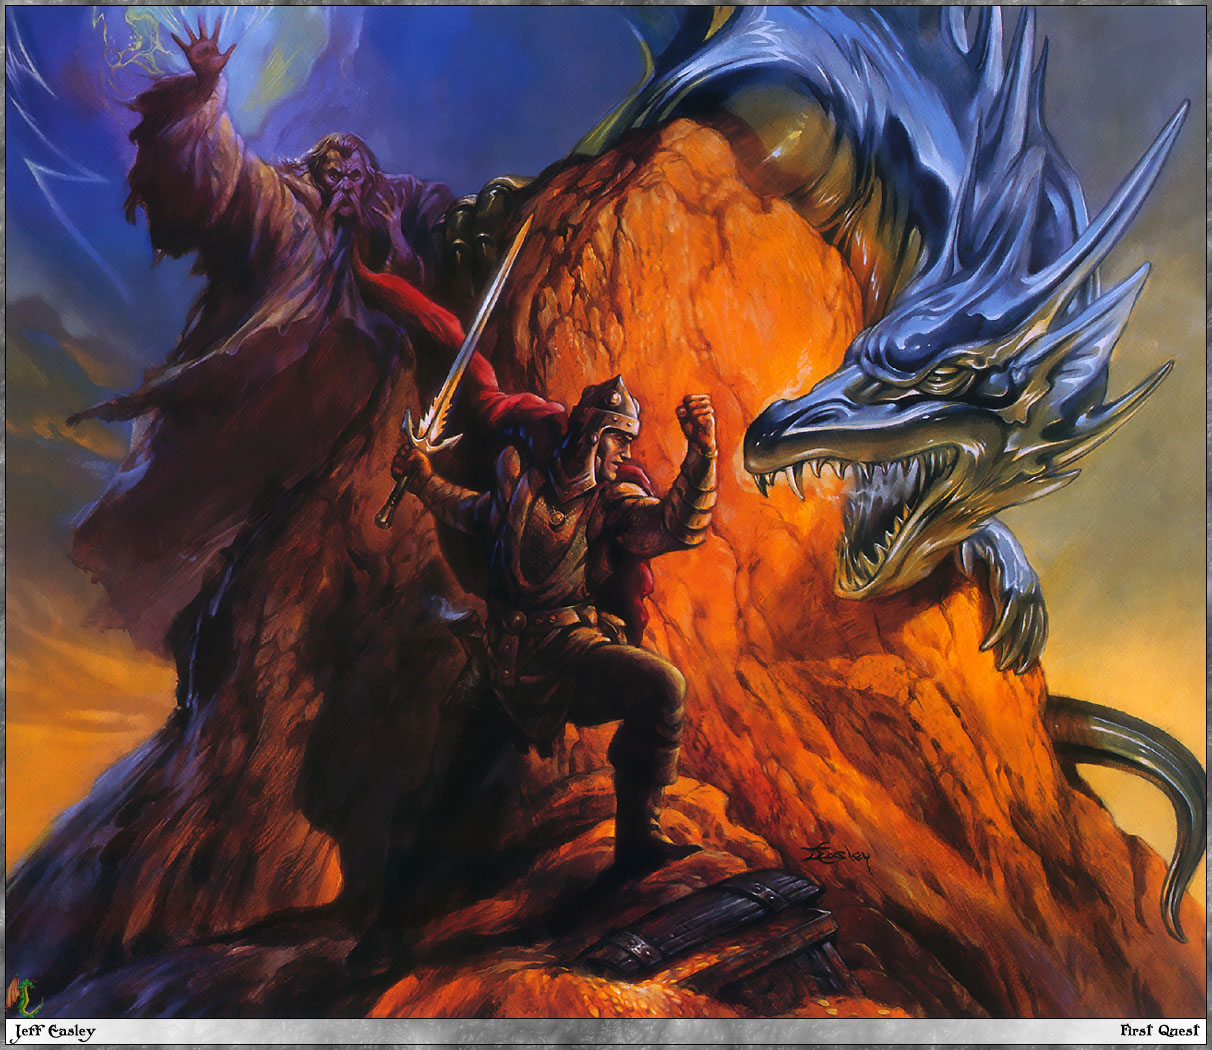 Work by Jeff Easley